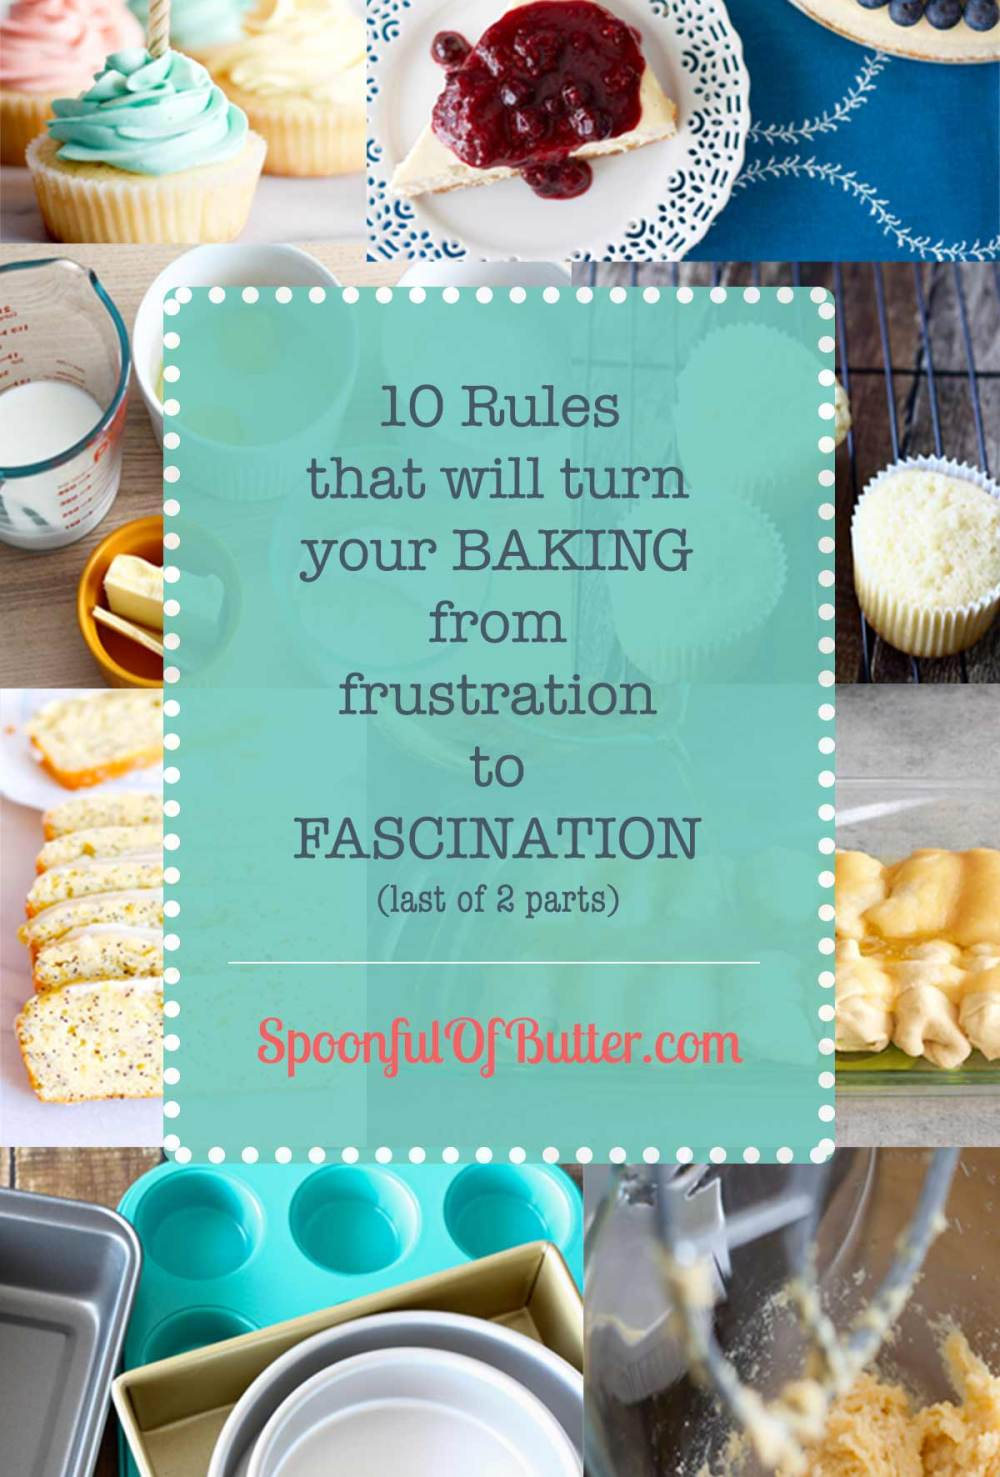 10 Rules That Will Turn Your Baking from Frustration to Fascination (last of 2 parts)